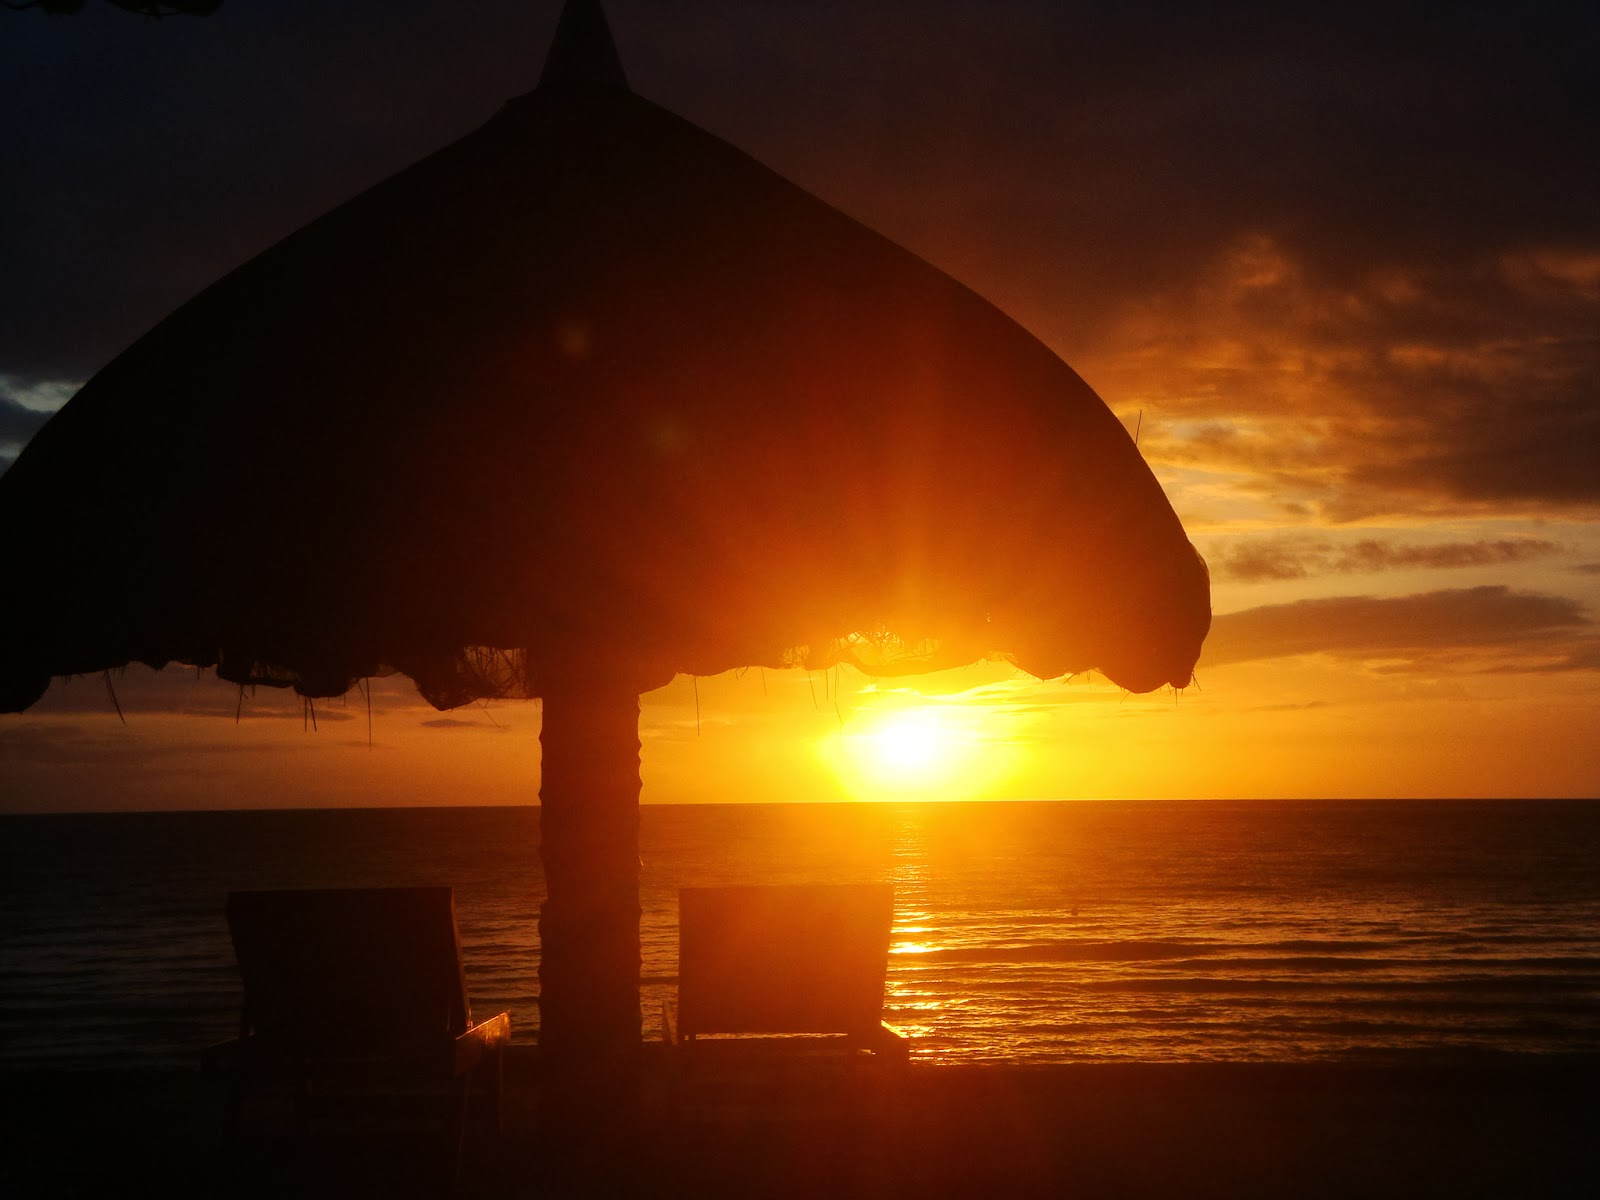 Sunset at El Salvador Beach Resort, Danao